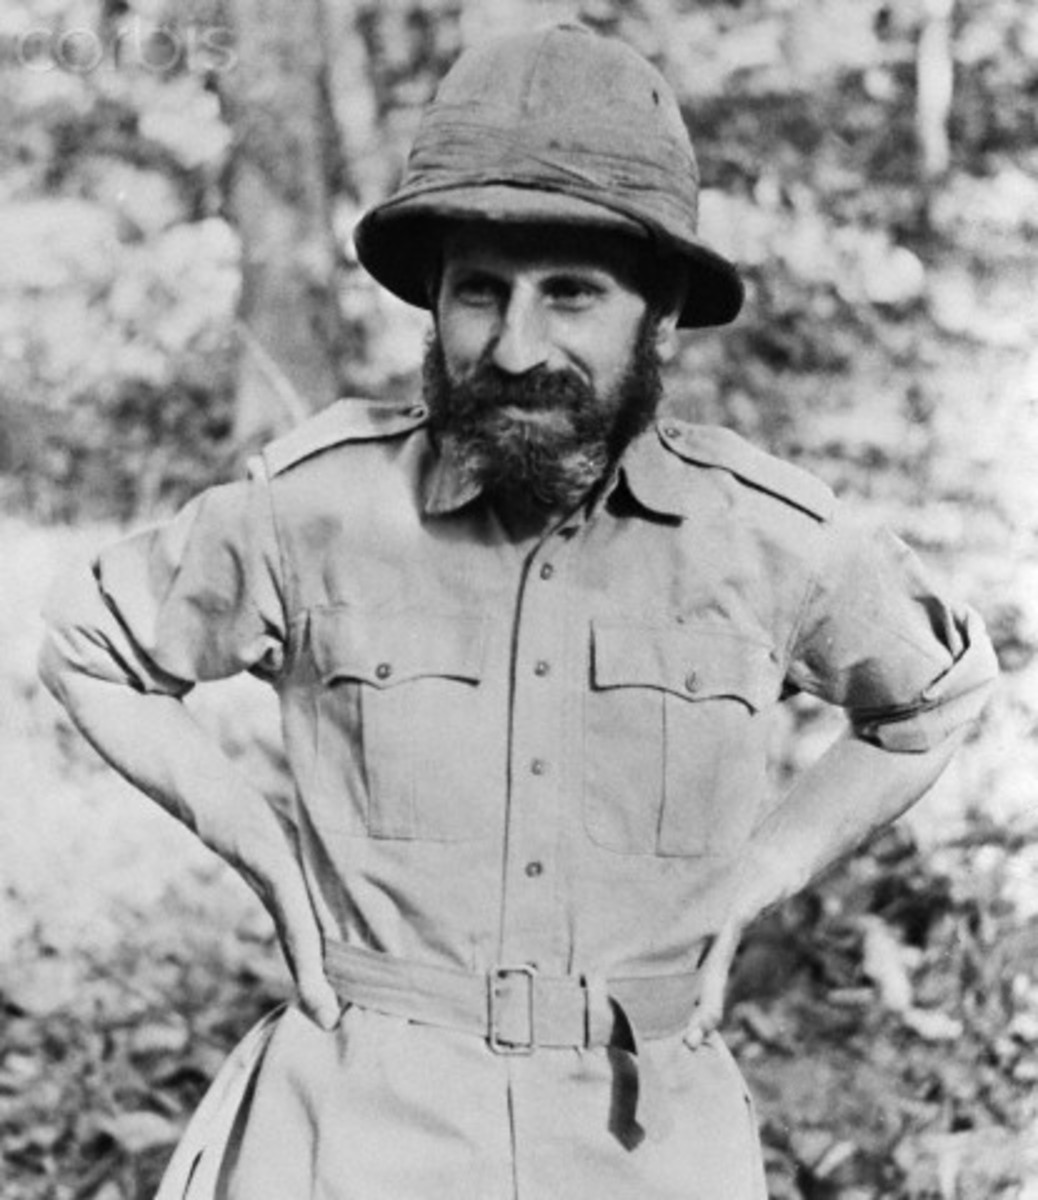 Spectres of the Burma Jungle, Orde Charles Wingate and  his Chindits defeat the murderous Japanese.